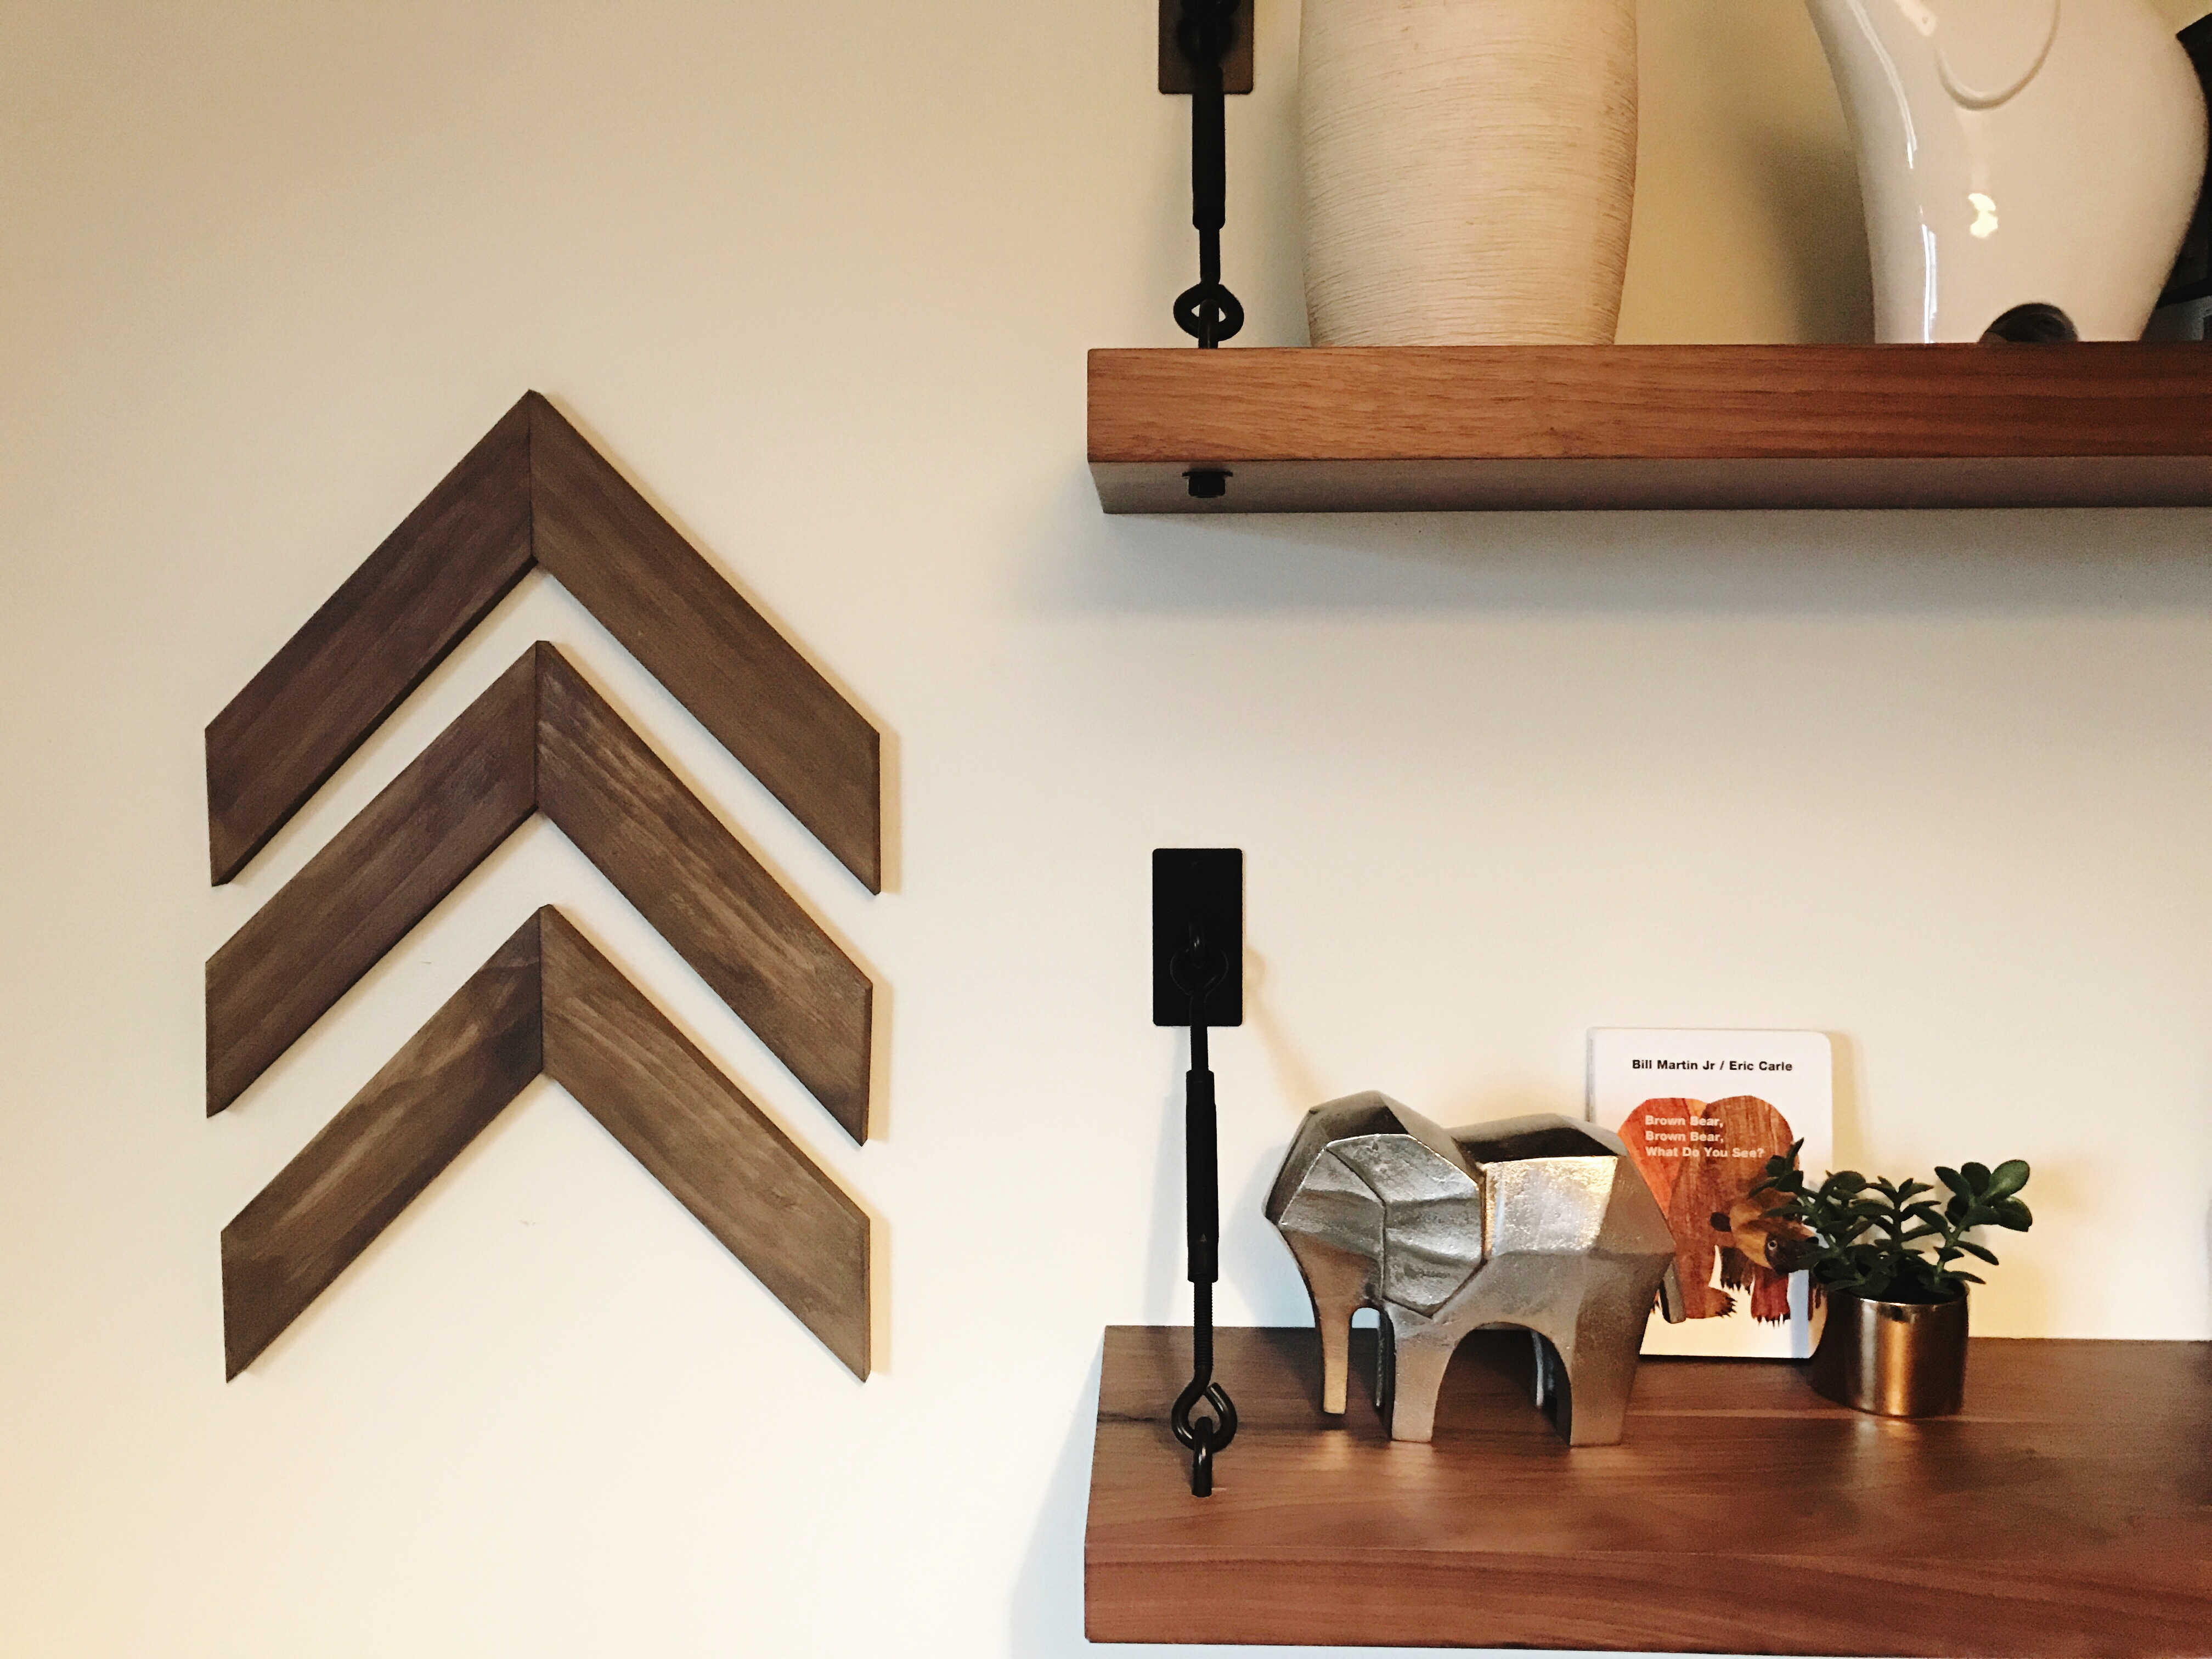 Pinterest Wall Decor: Easy DIY Wooden Arrow Wall Decor Tutorial